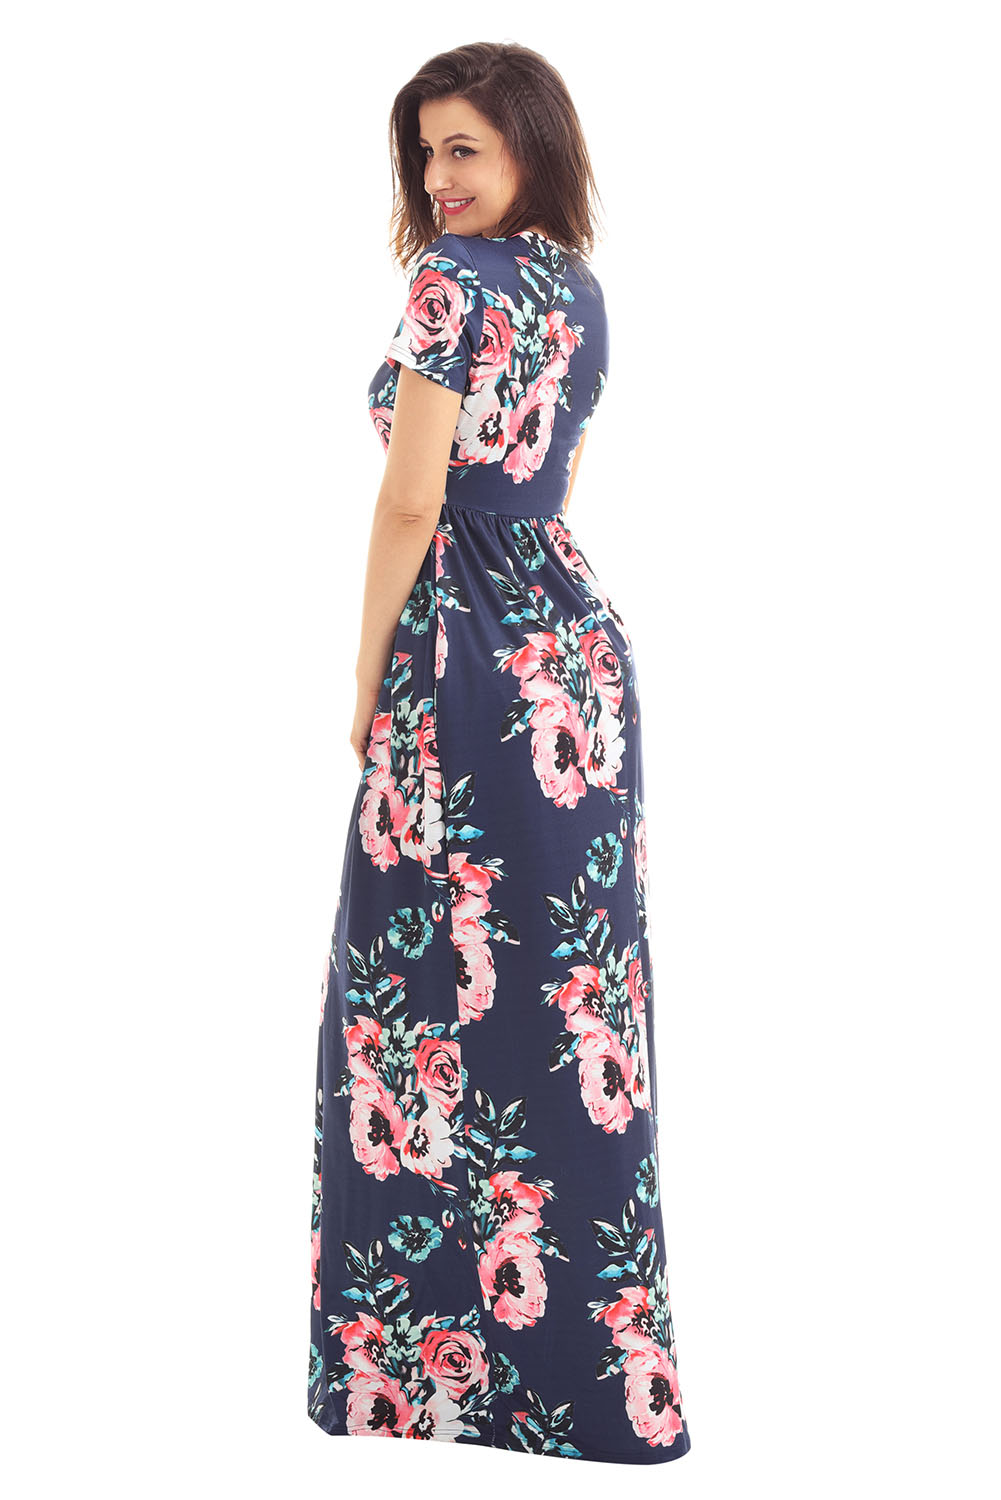 Pocket Design Short Sleeve Floral Maxi Dress Stage Dance